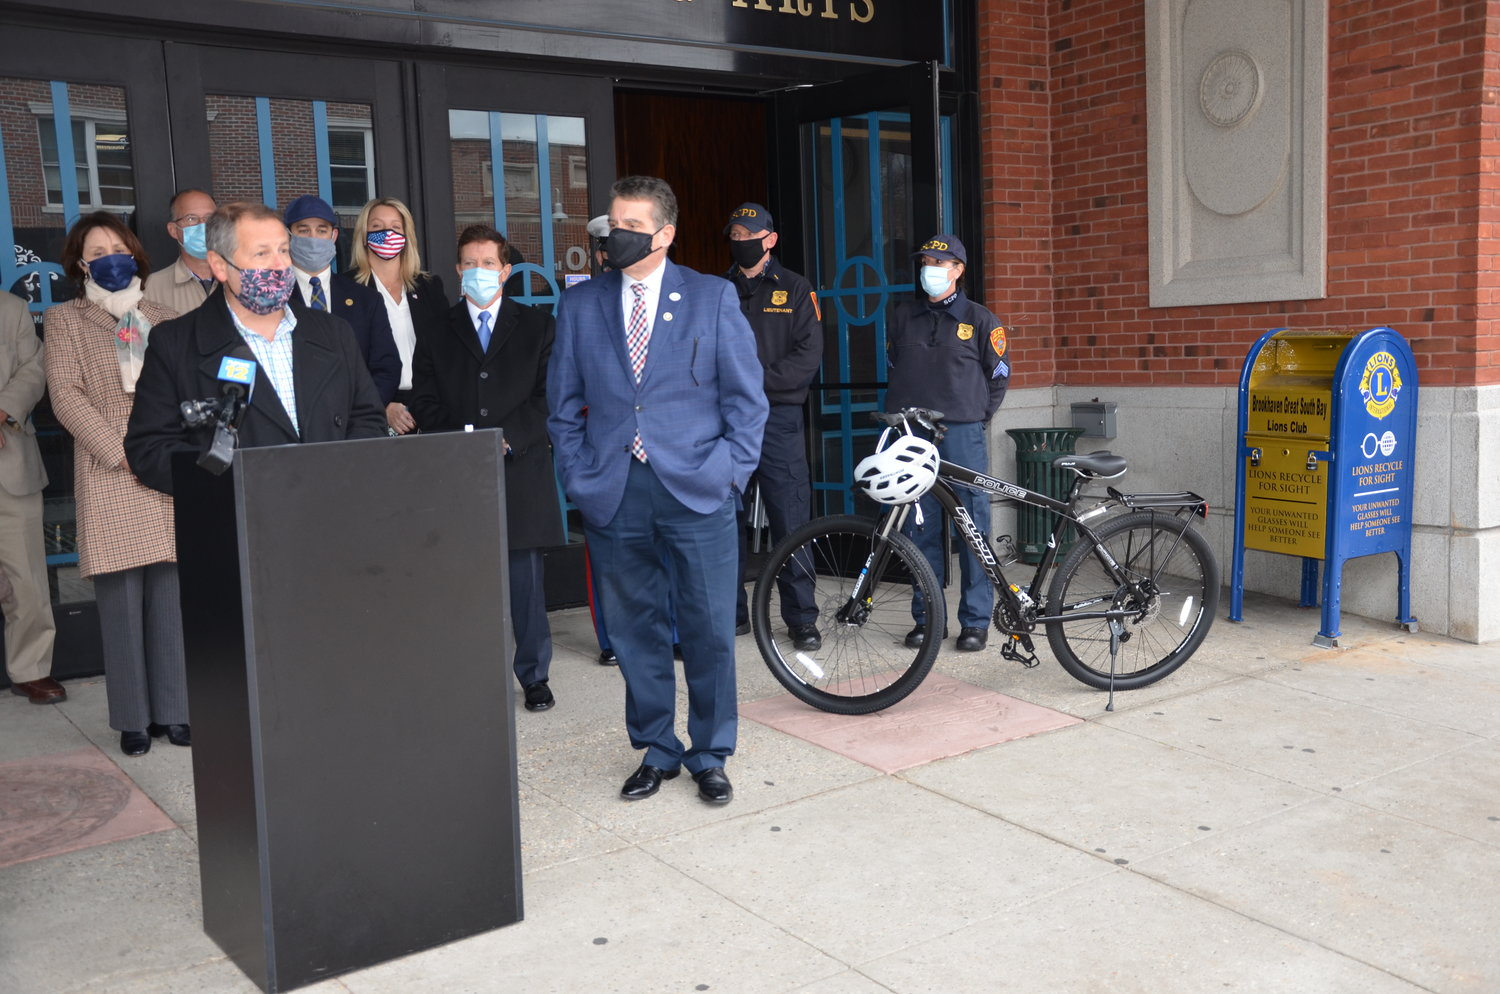 Greater Patchogue Chamber of Commerce president David Kennedy explained that the volume of events in Patchogue like Alive After Five warrants patrol by bicycle. Two bicycles were donated to SCPD by the Suffolk County Alliance of Chambers.